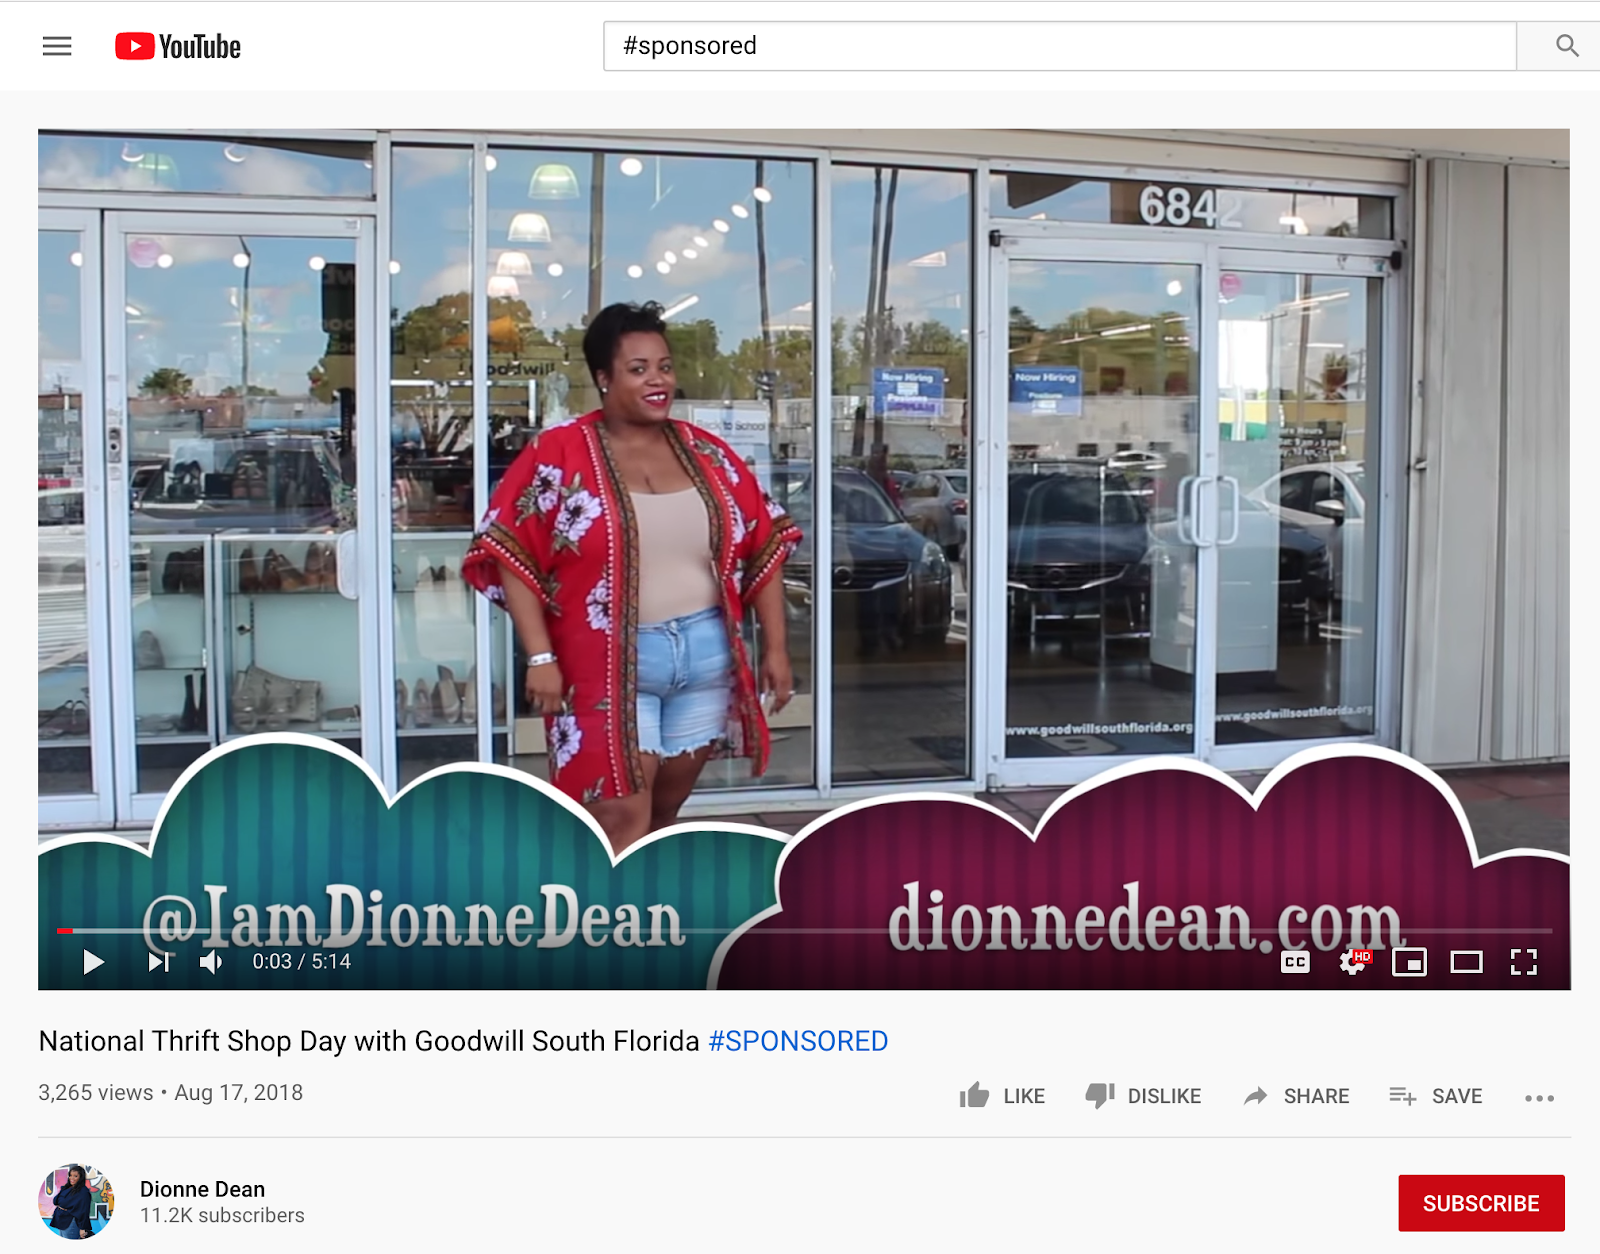 example of a sponsored video collaboration